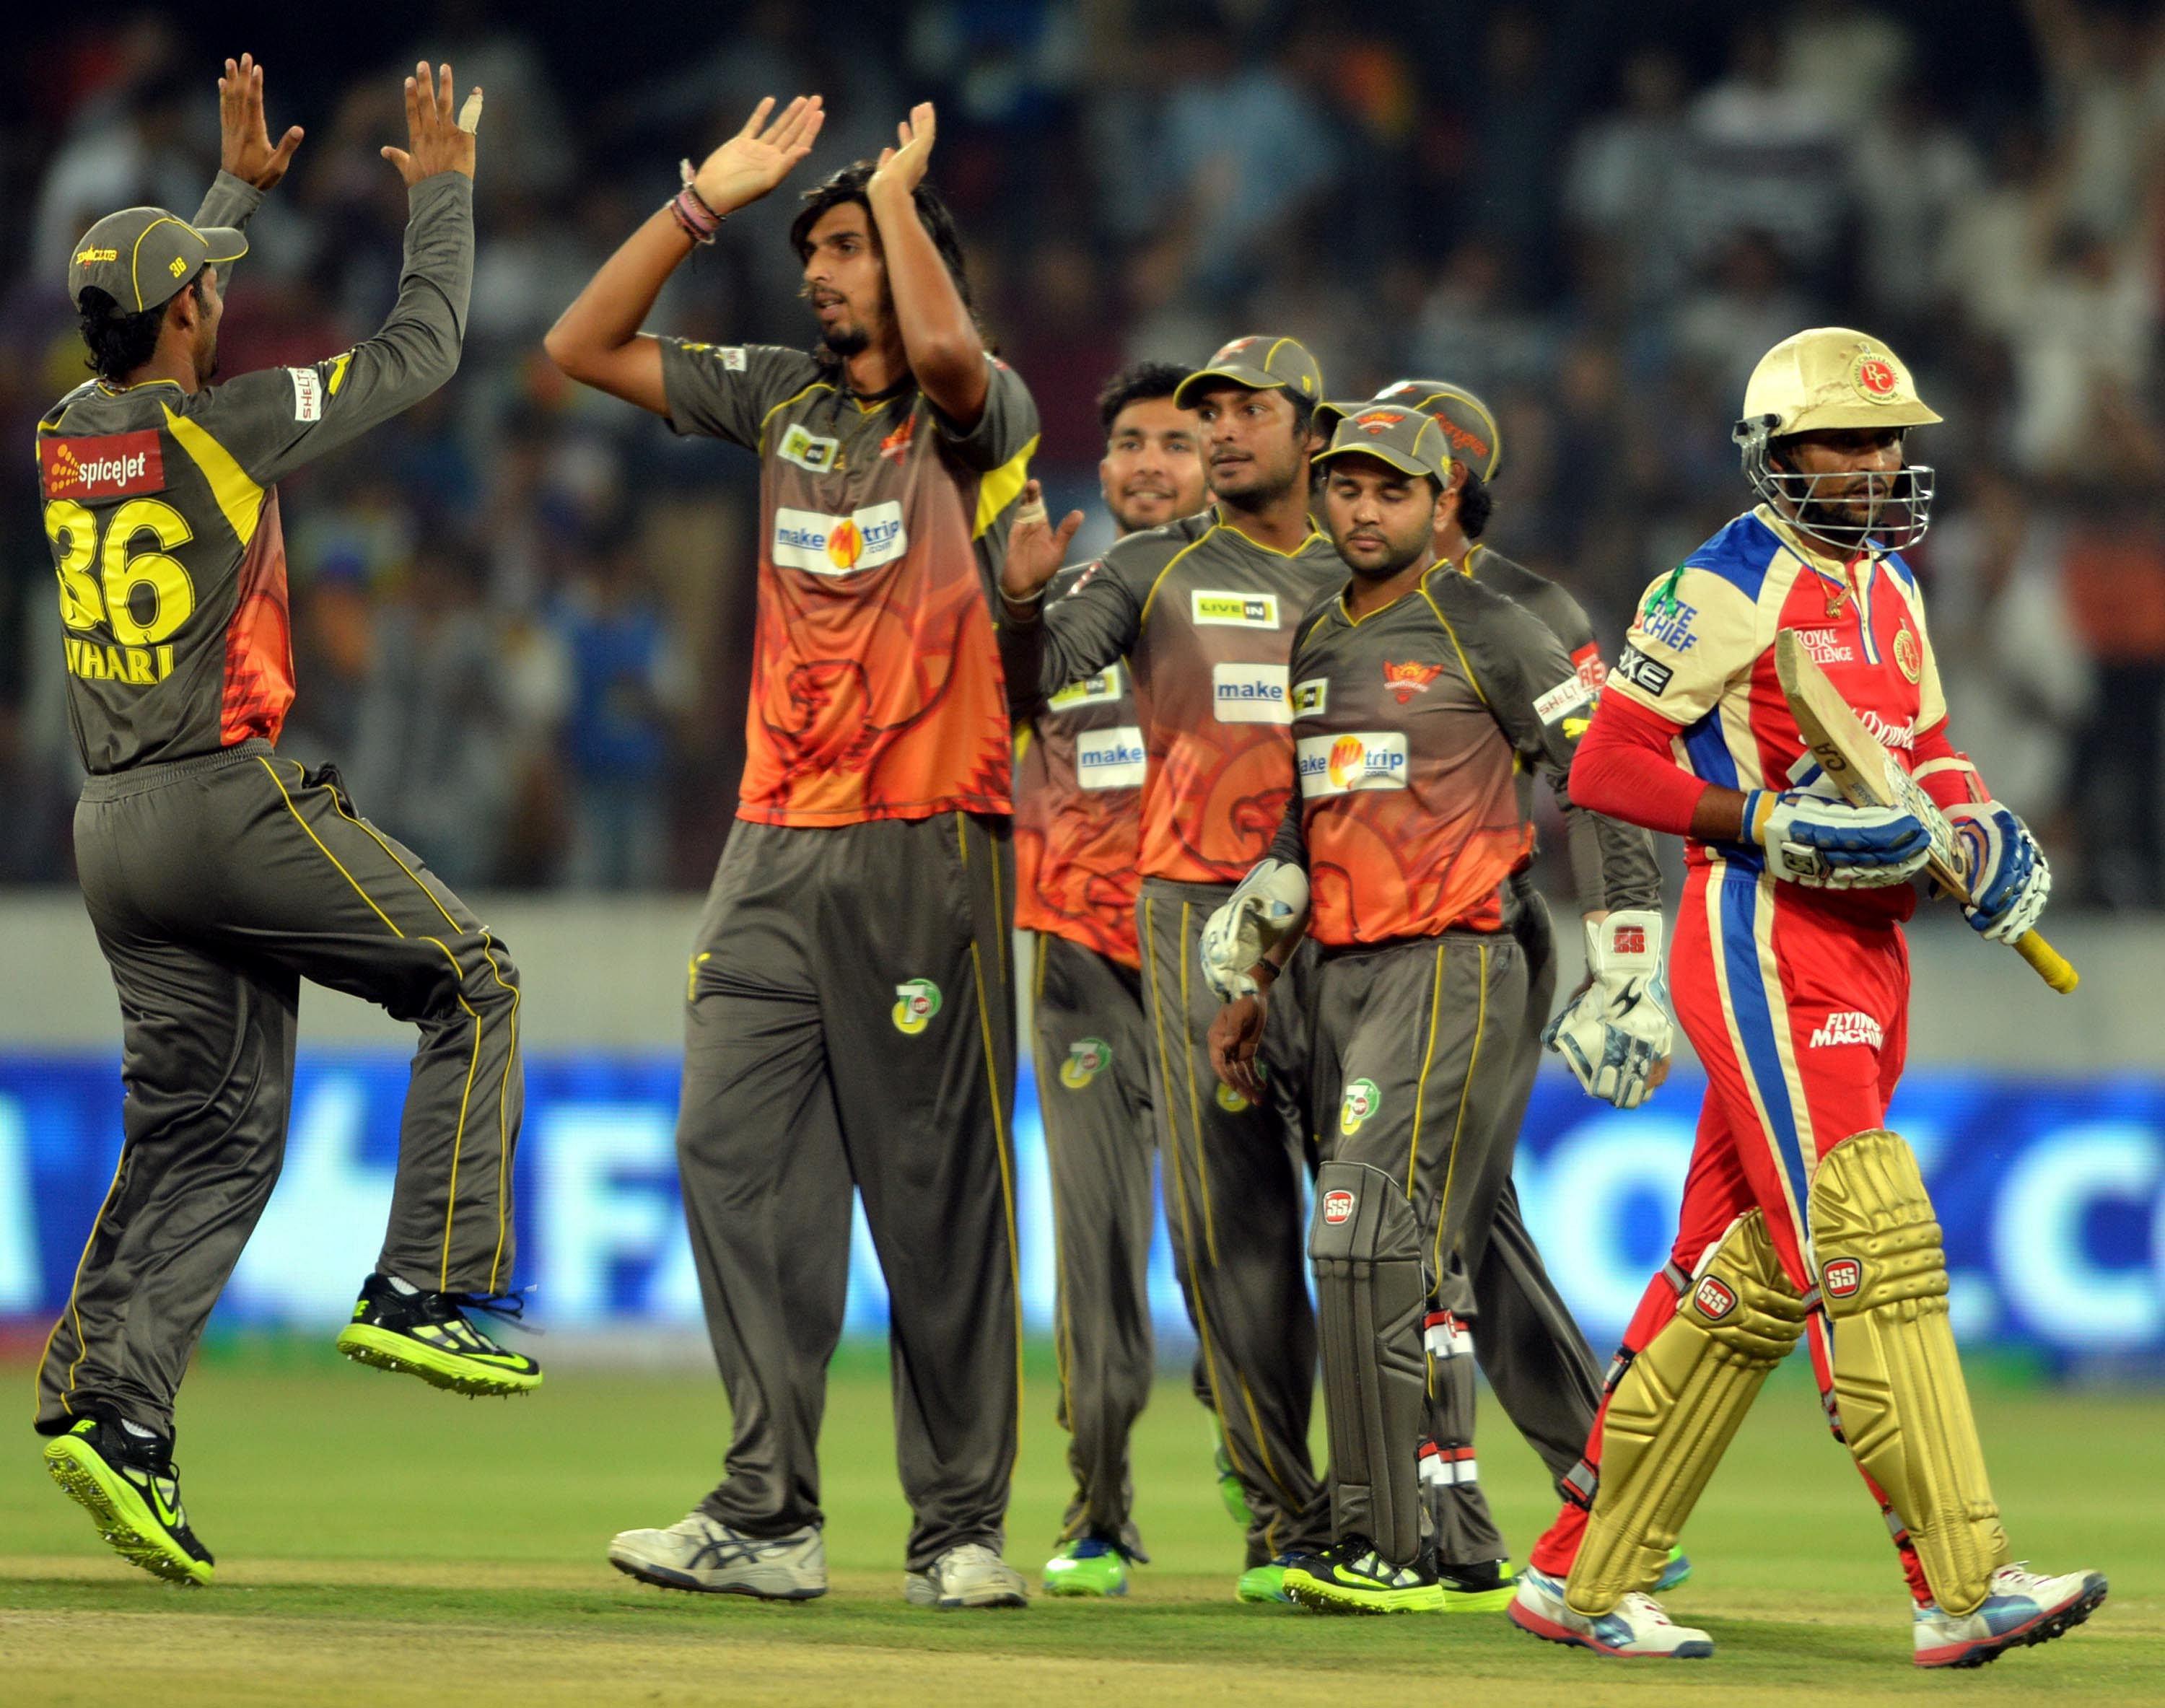 Sunrisers Hyderabad player celebrate as Royal Challenger Bangalore player TM Dilshan walks back to the pavilion during the match between Royal Challengers Bangalore and Sunrisers Hyderabad at Hyderabad on April 7, 2013. (Phoo: IANS)